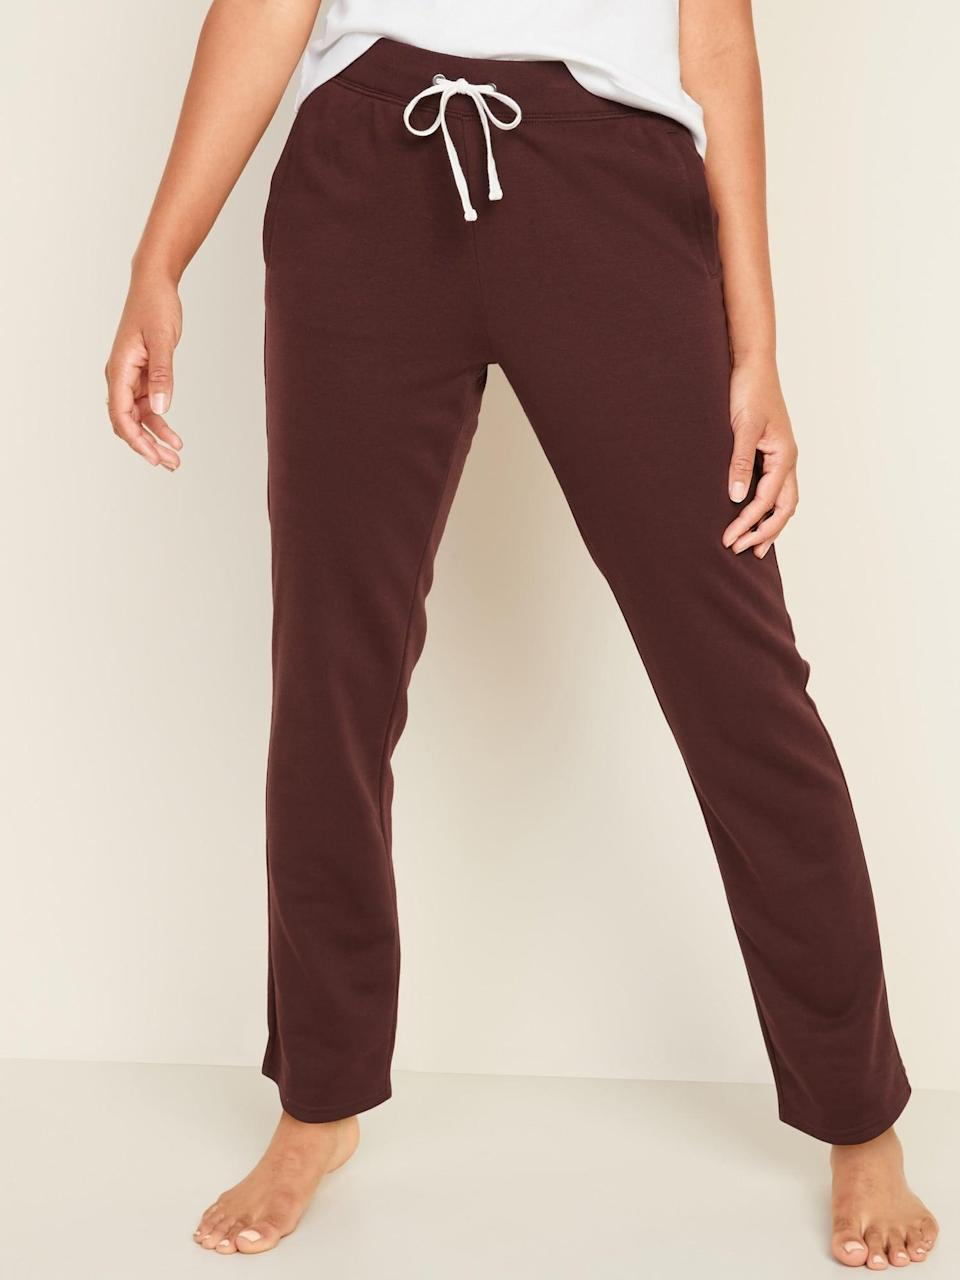 <p>Style these <span>French Terry Straight-Leg Sweatpants</span> ($25, originally $30) with matching sweatshirts and you'll be rocking the coolest sets.</p>